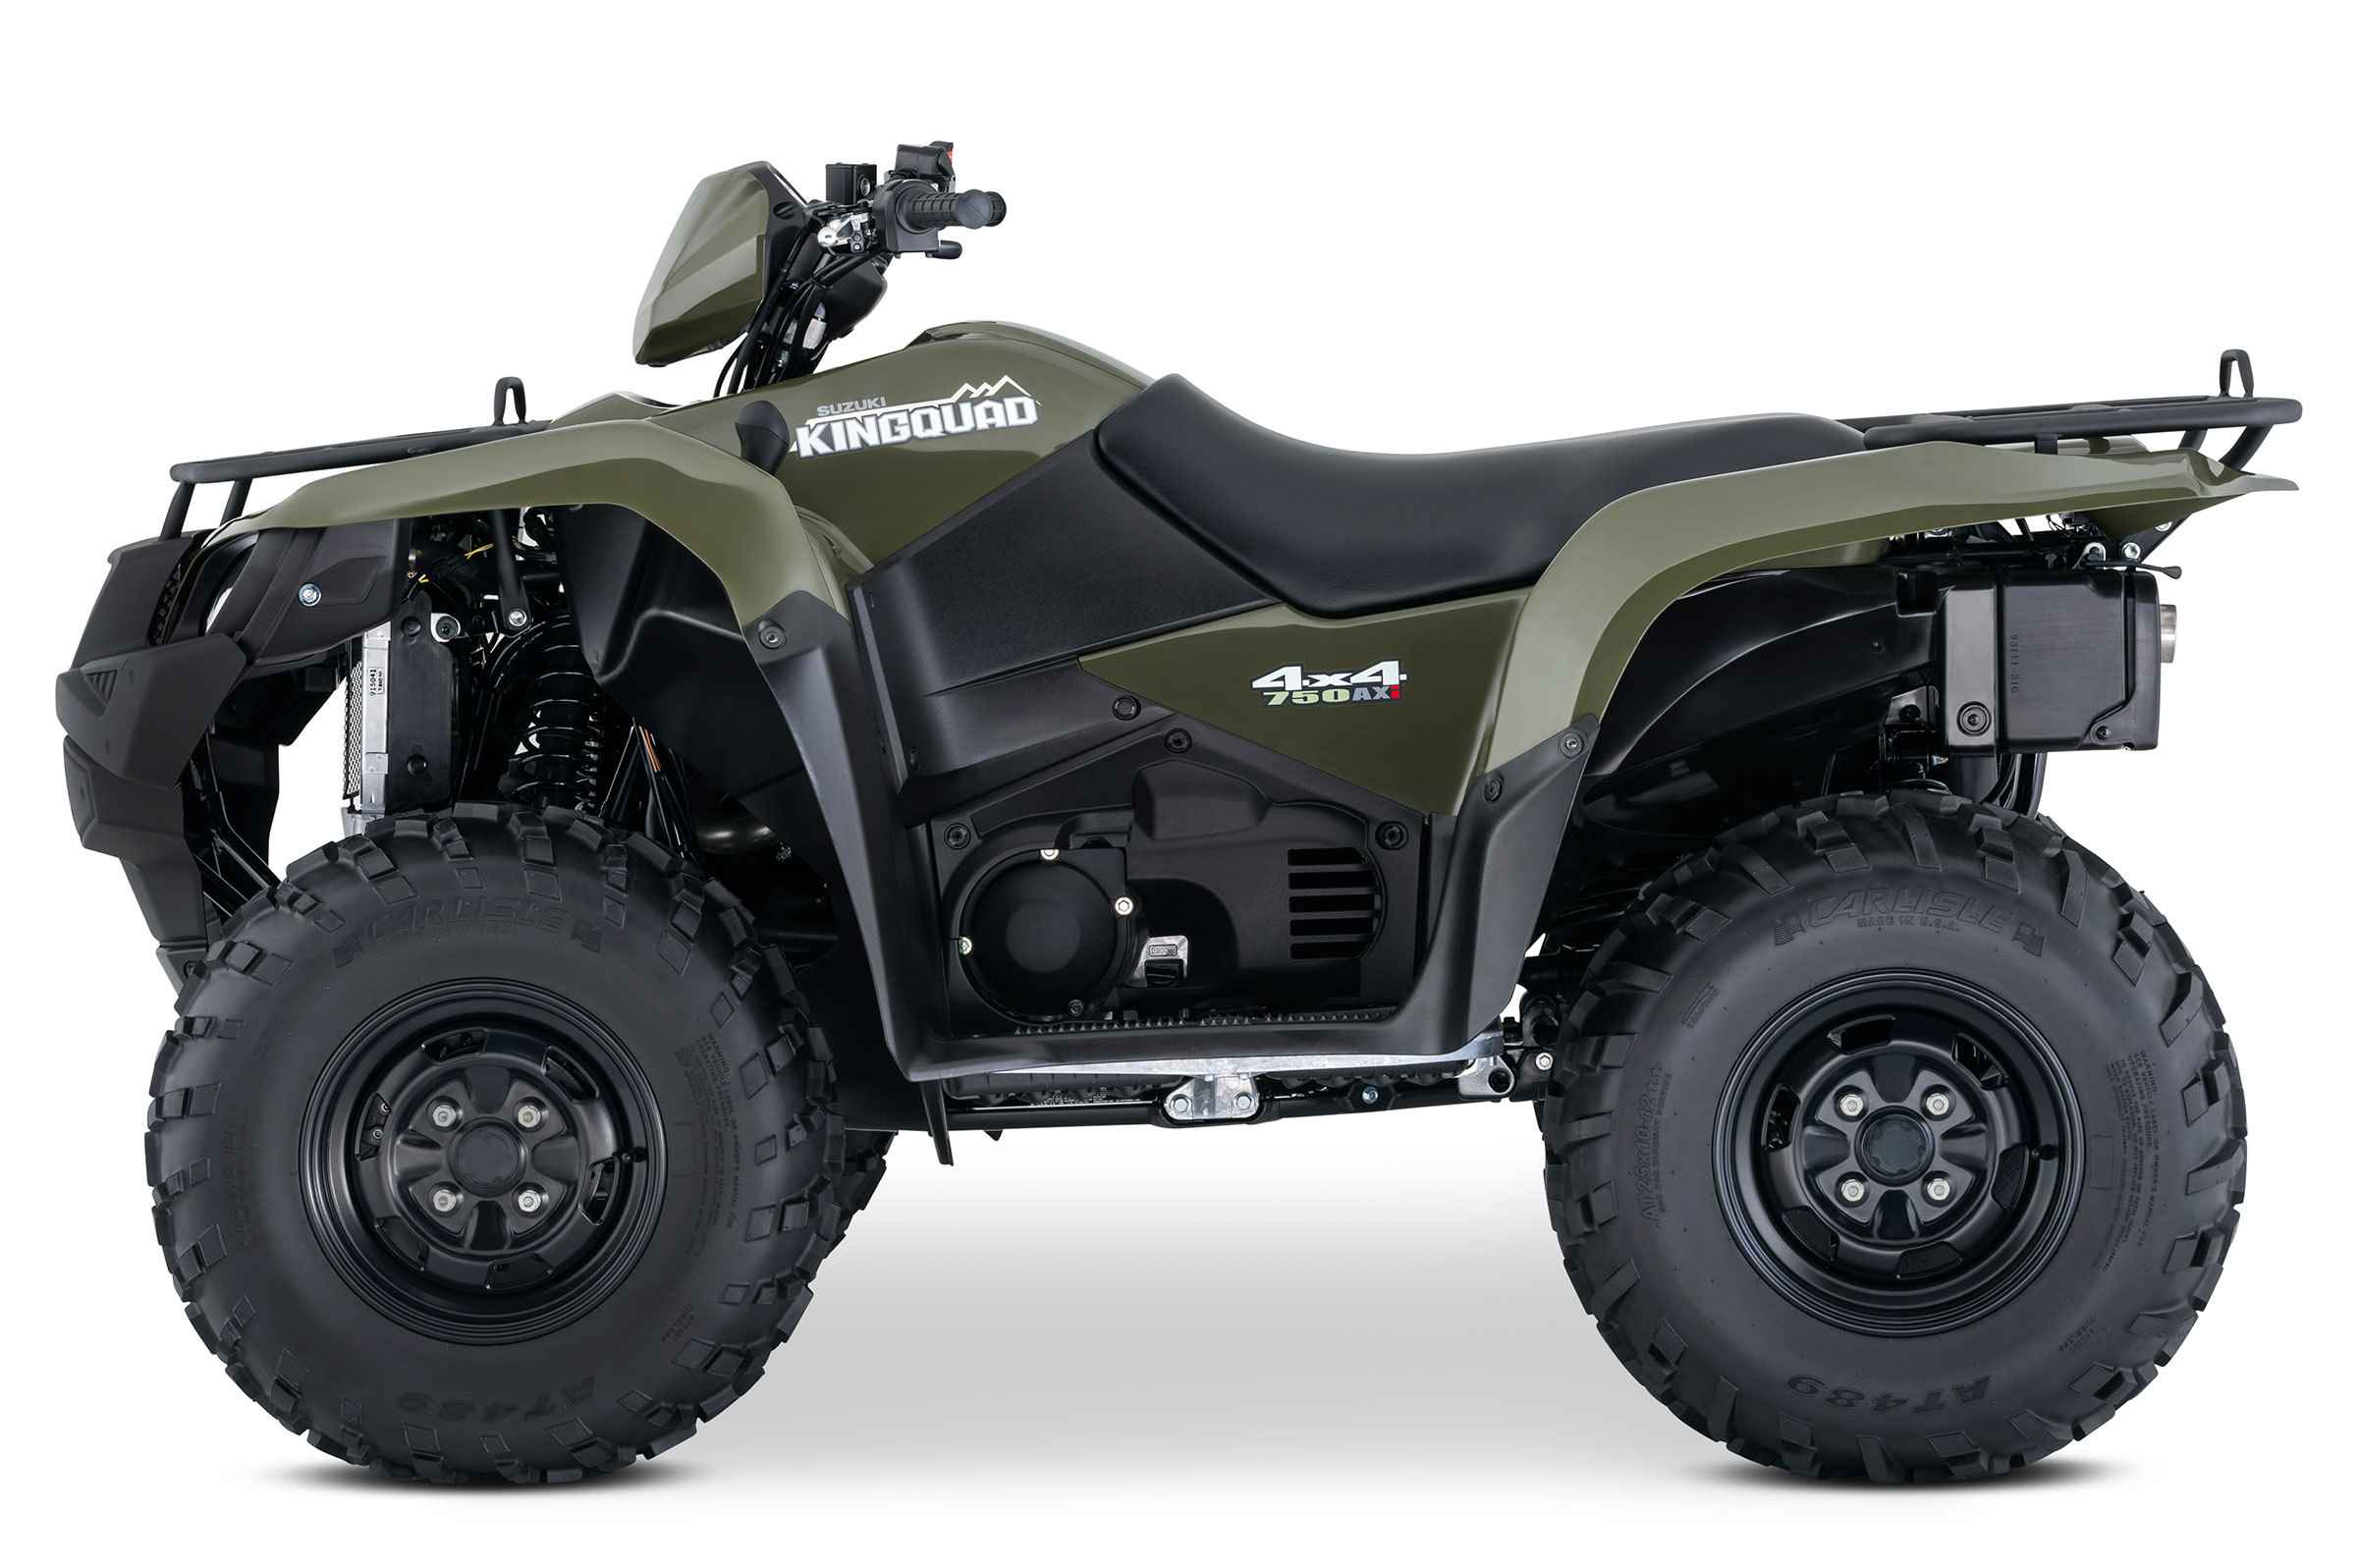 New 2017 suzuki kingquad 750axi atvs for sale in north for Yamaha 110 atv for sale